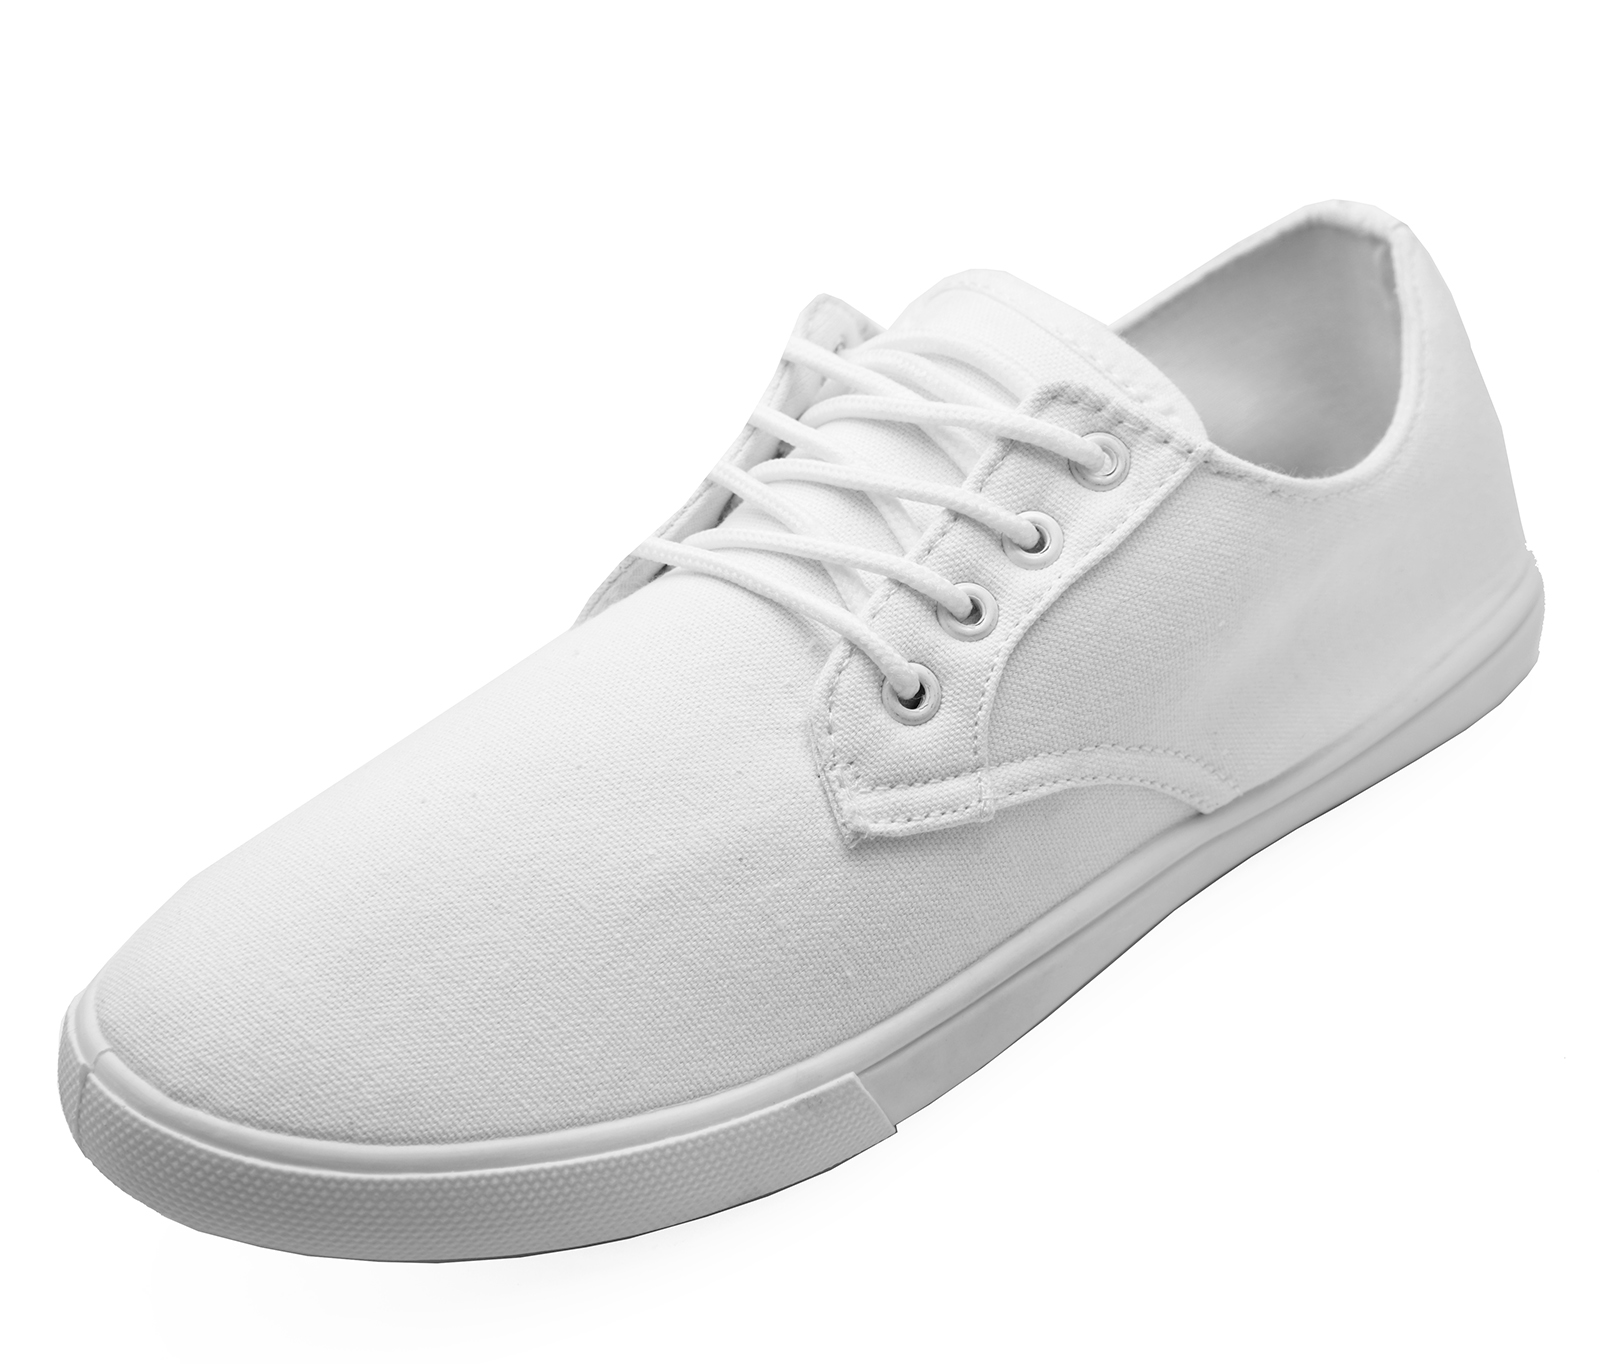 MENS-LACE-UP-WHITE-CANVAS-FLAT-TRAINER-PLIMSOLL-PUMPS-CASUAL-SHOES-SIZES-6-12